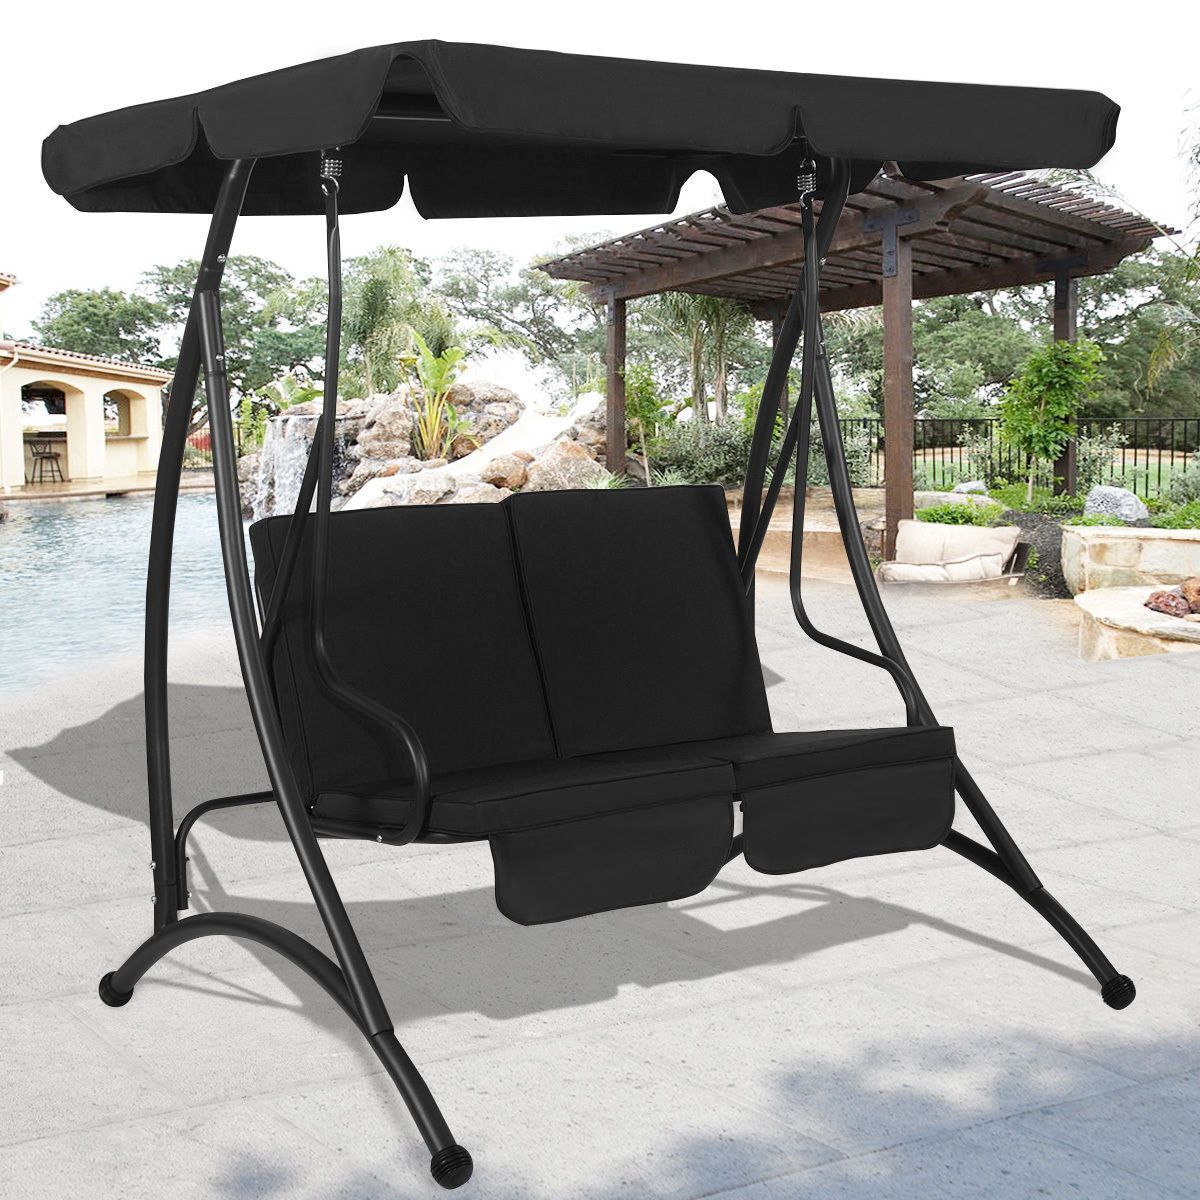 Outdoor Patio Canopy Swing Chair Metal 2 Person Garden Inside Canopy Patio Porch Swings With Pillows And Cup Holders (View 3 of 25)